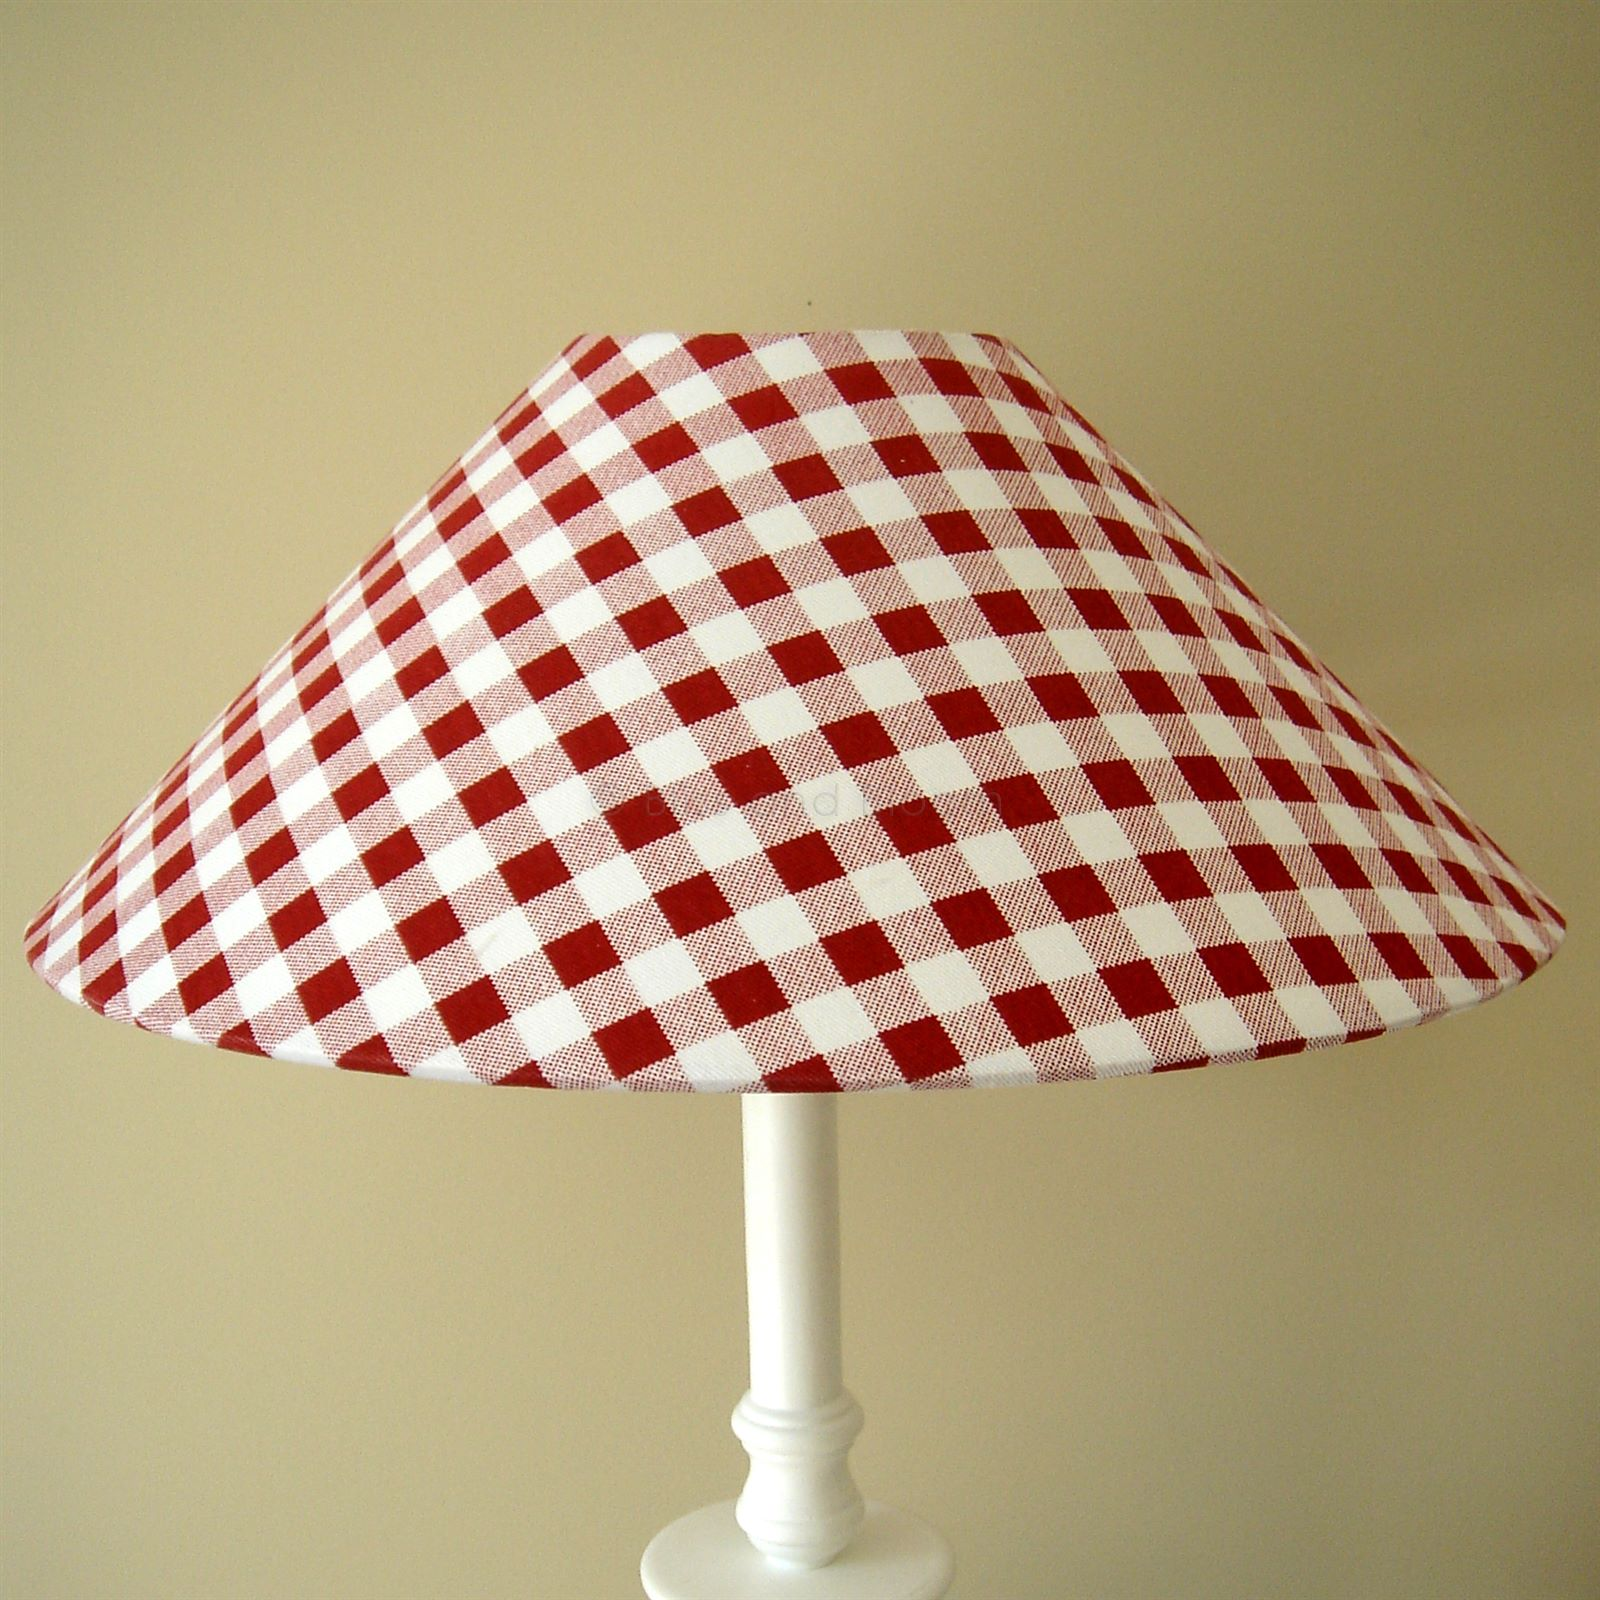 Red Gingham Lamp Shade: Red gingham lampshade. Hover to zoom Click here for a bigger picture,Lighting